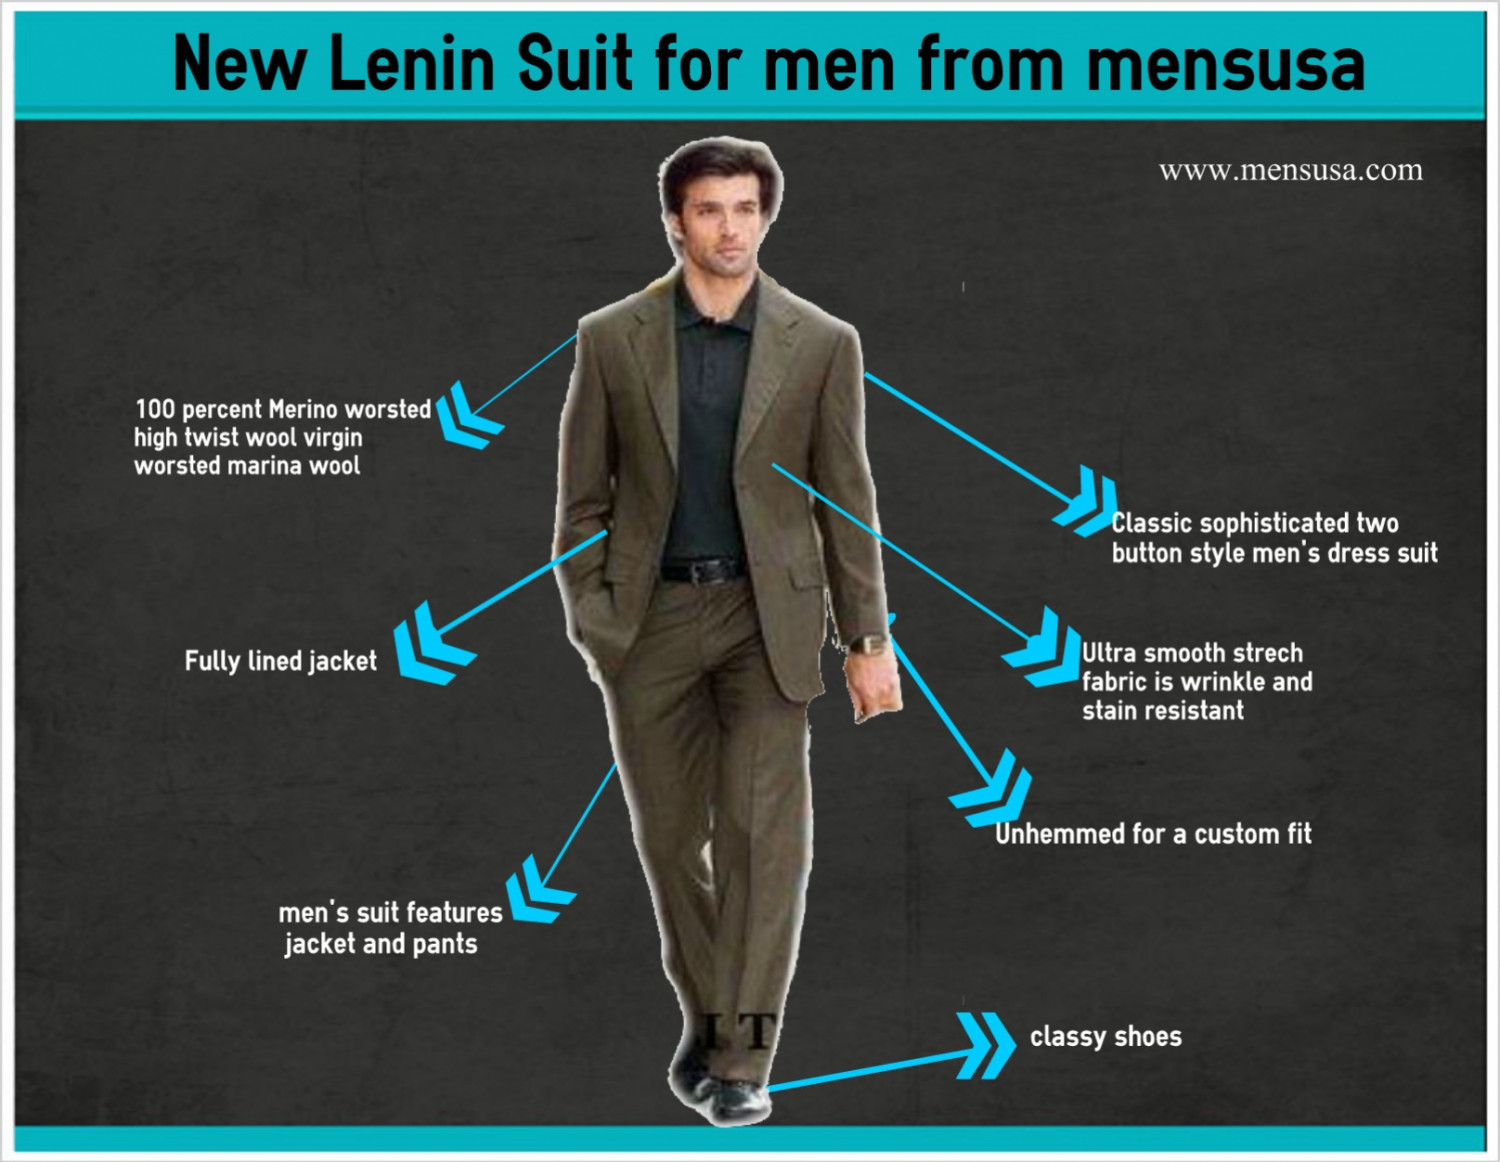 LINEN SUITS FOR MEN FROM MENSUSA Infographic